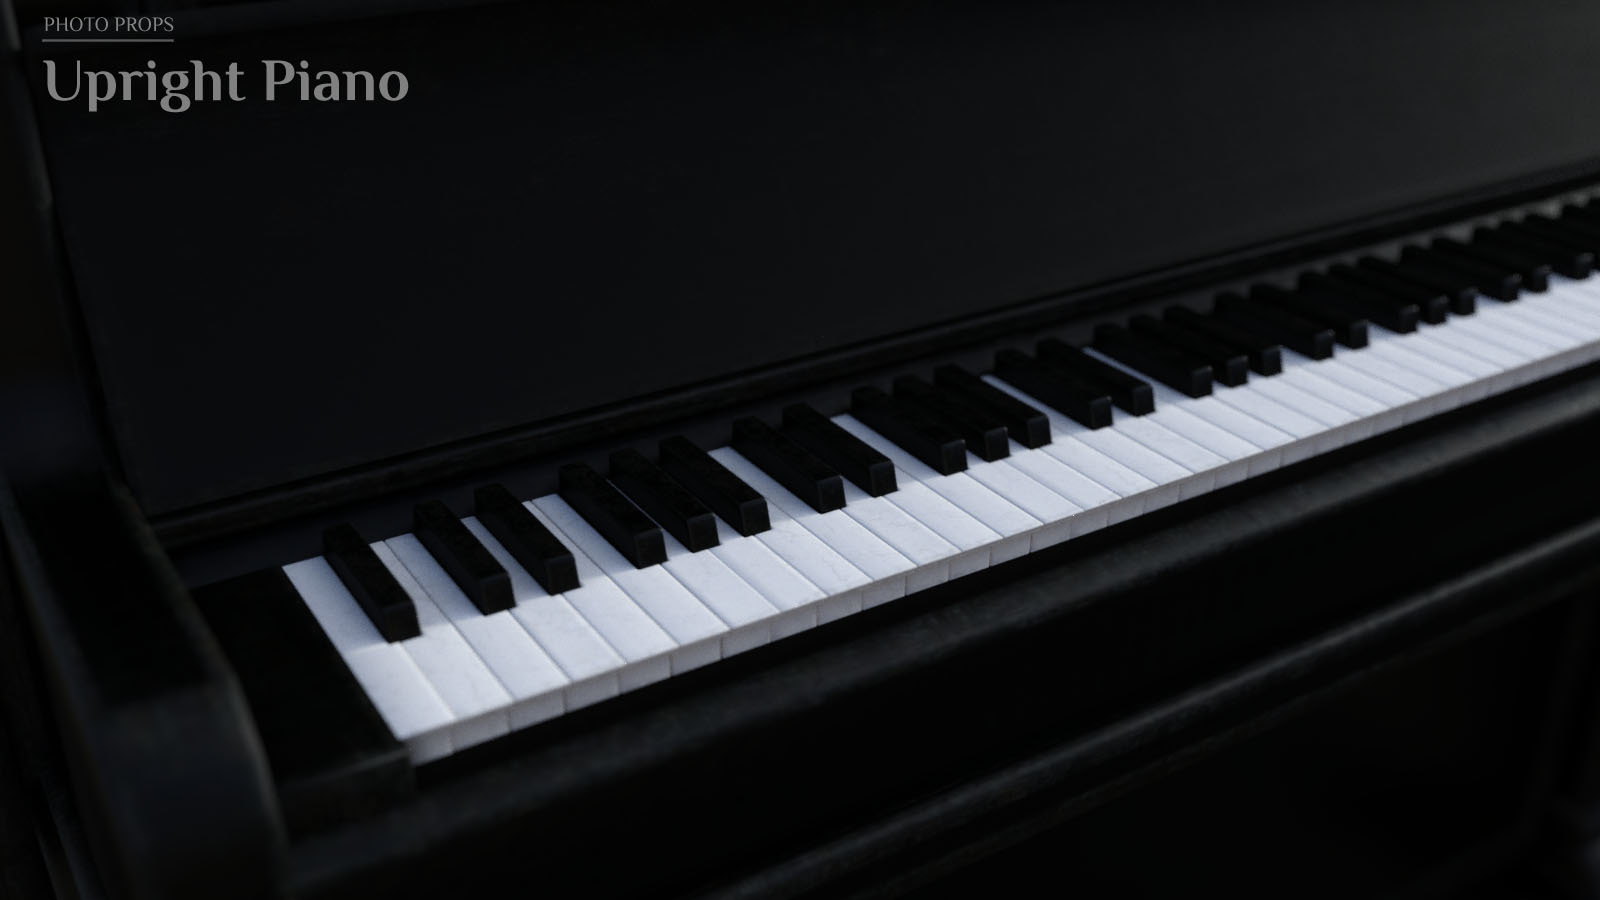 Photo Props: Upright Piano